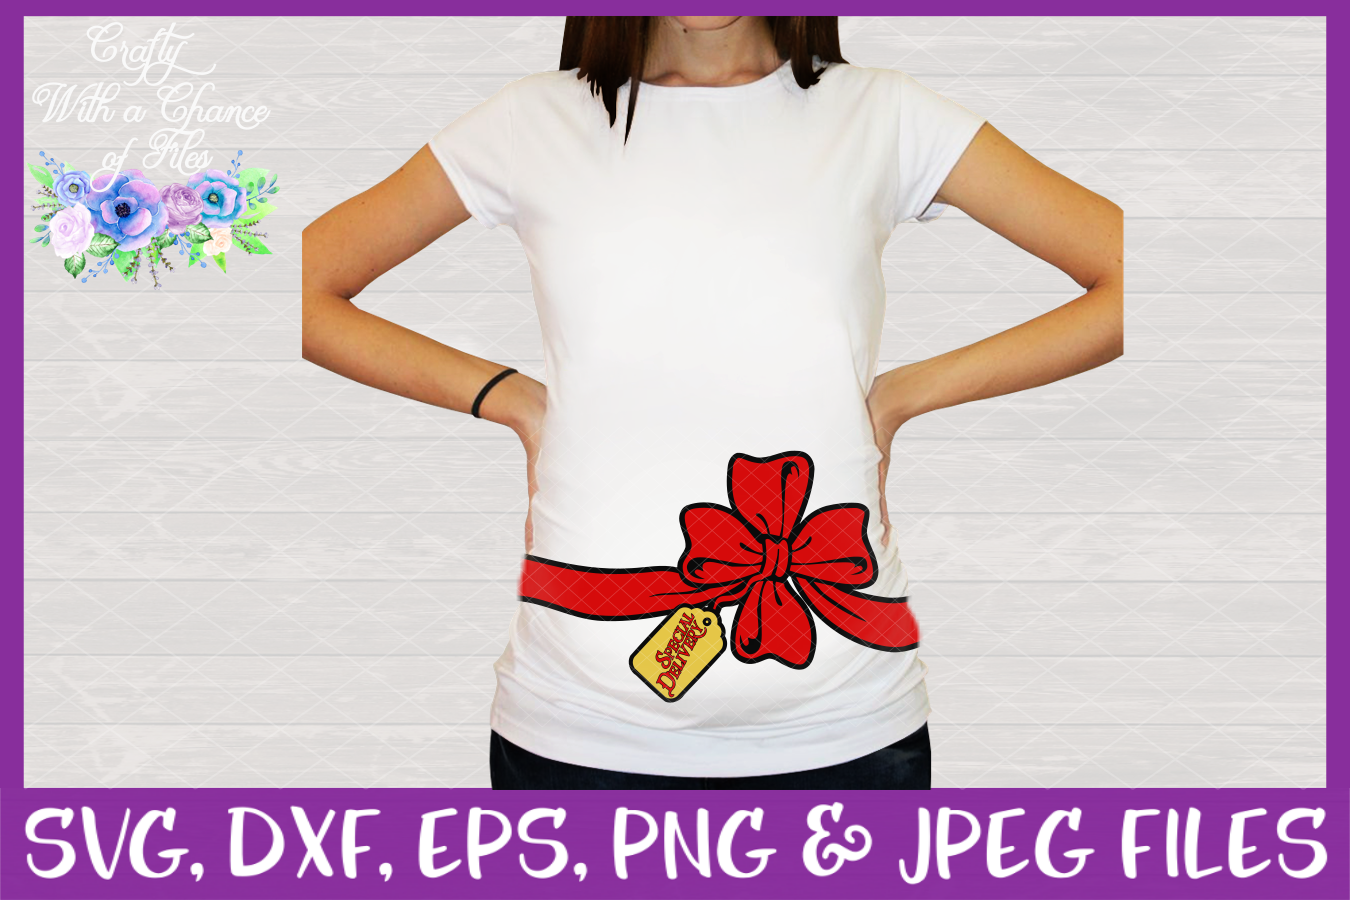 Christmas Pregnancy SVGs - Maternity Designs example image 3